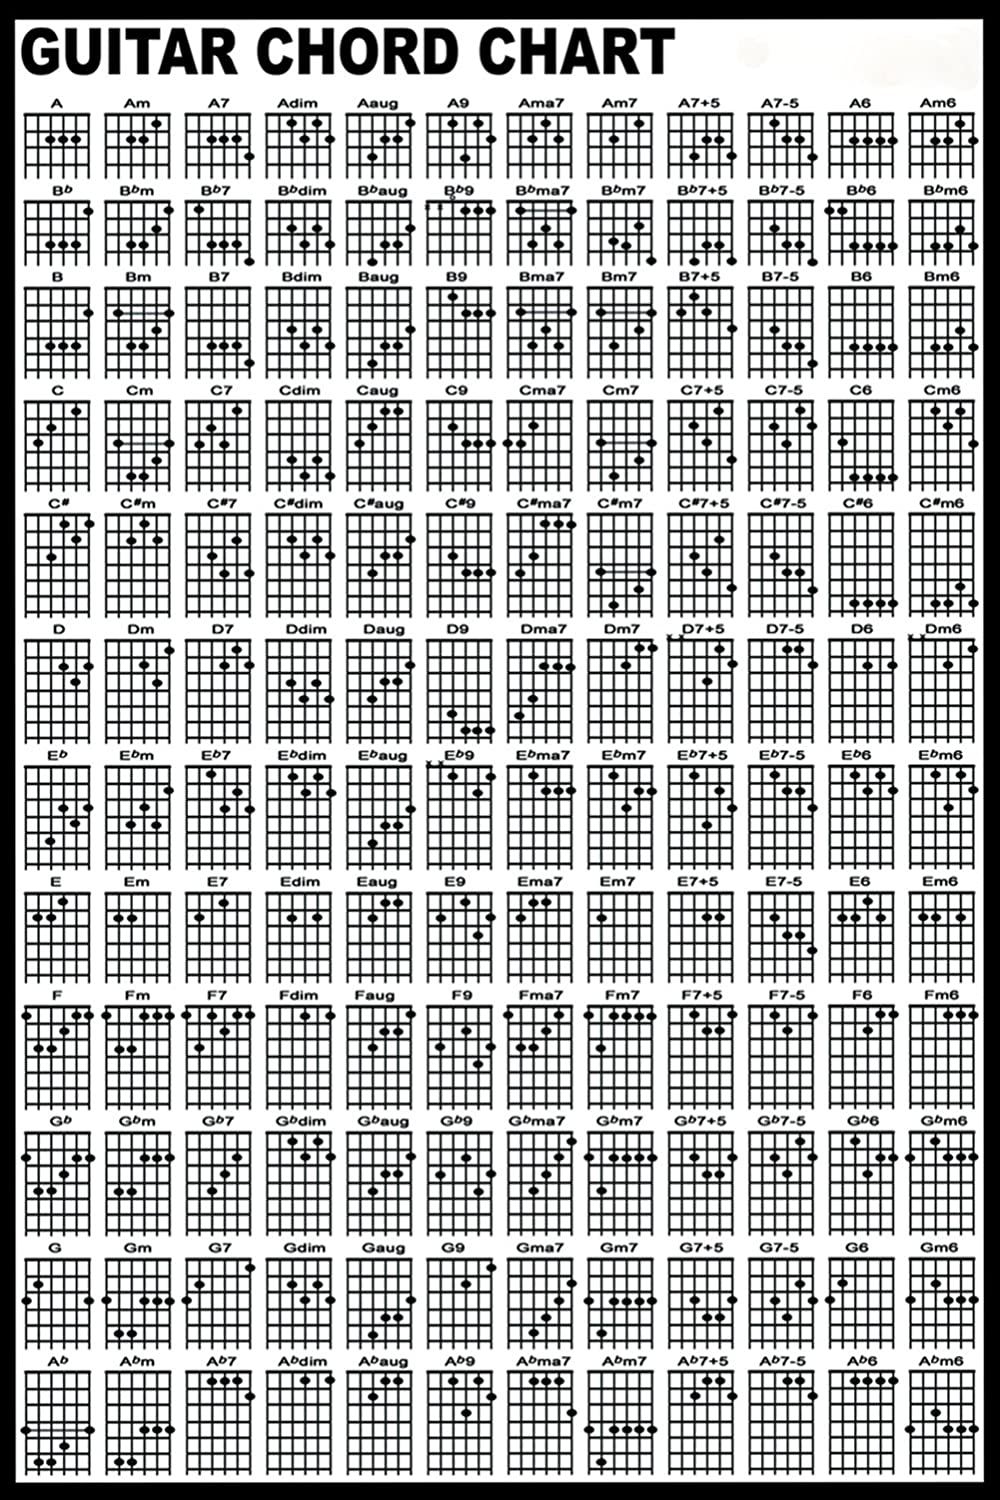 Decorative Chords A7 Guitar Chord Chart Poster Dnoving Stylish Art Print Pattern Wall Inch Posters